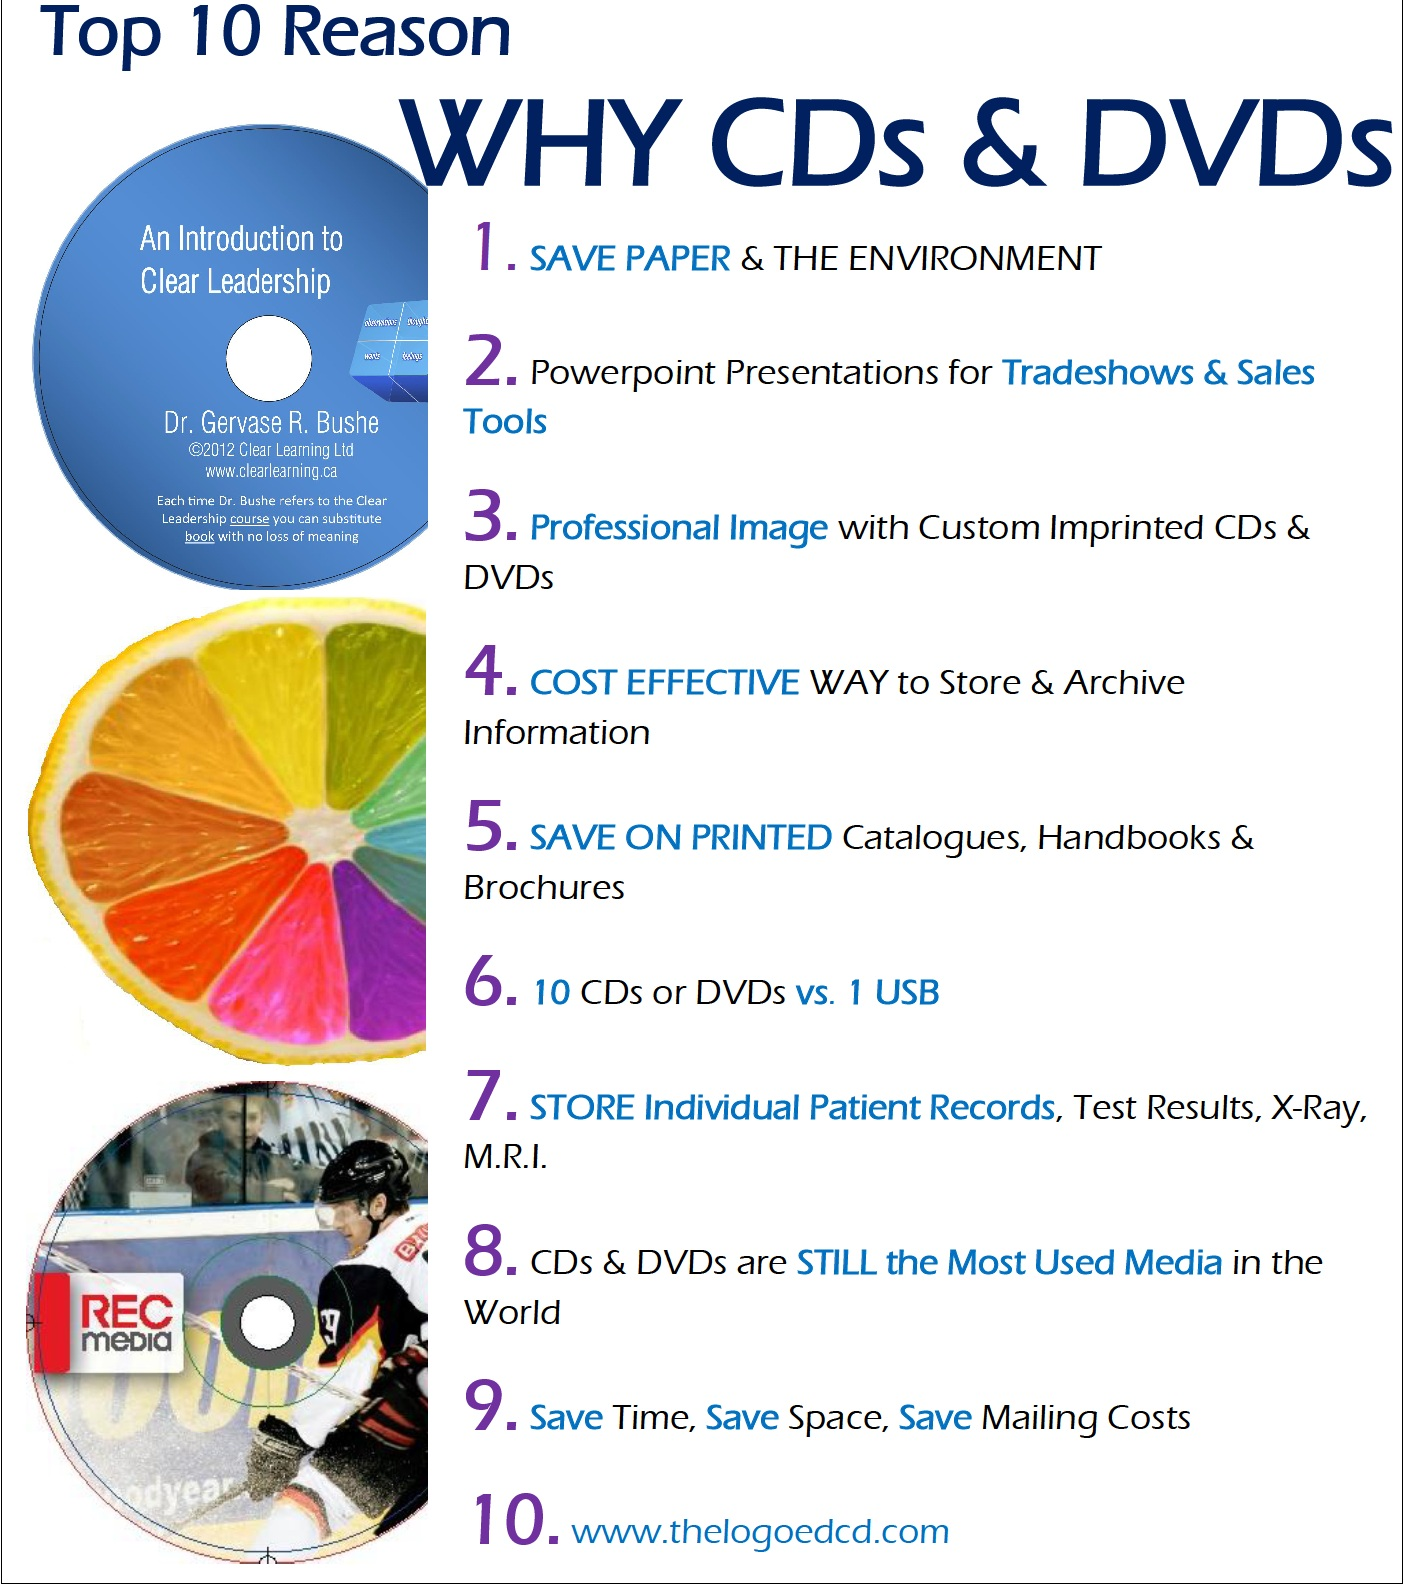 Top 10 reasons why CDs and DVDs are good